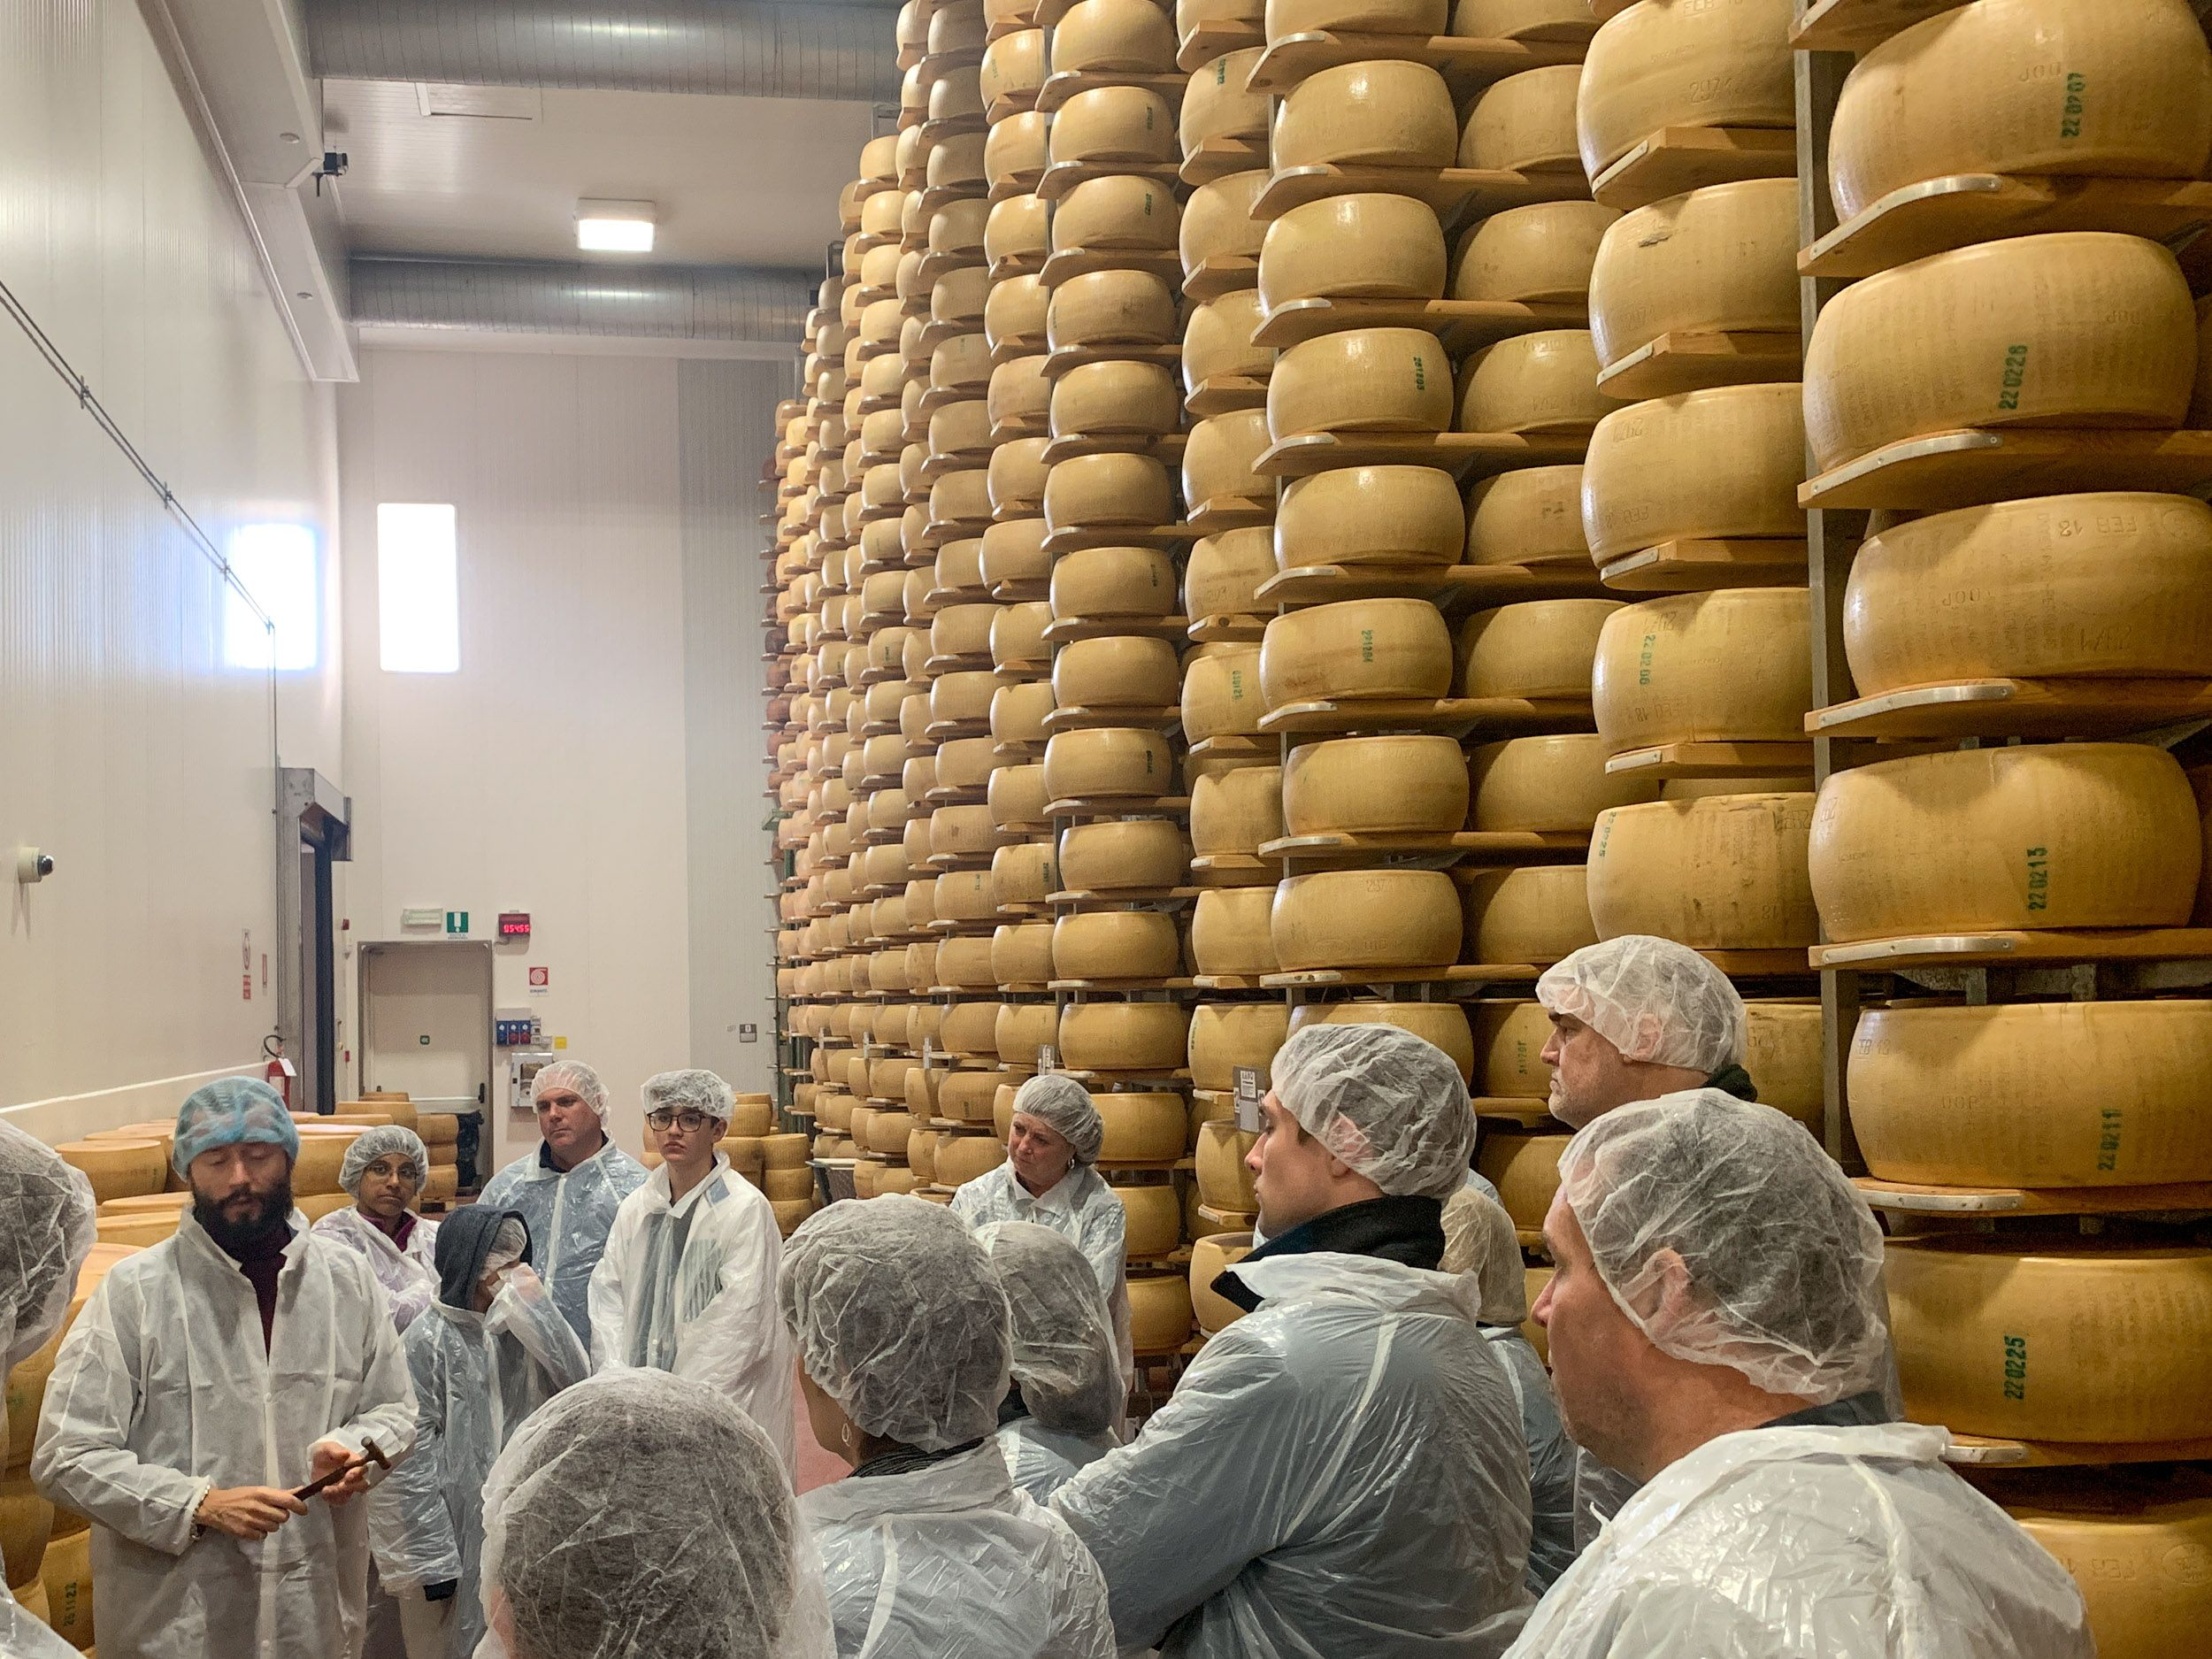 Touring a Parmigiano Reggiano factory is a can't-miss food experience in Emilia-Romagna, Italy.